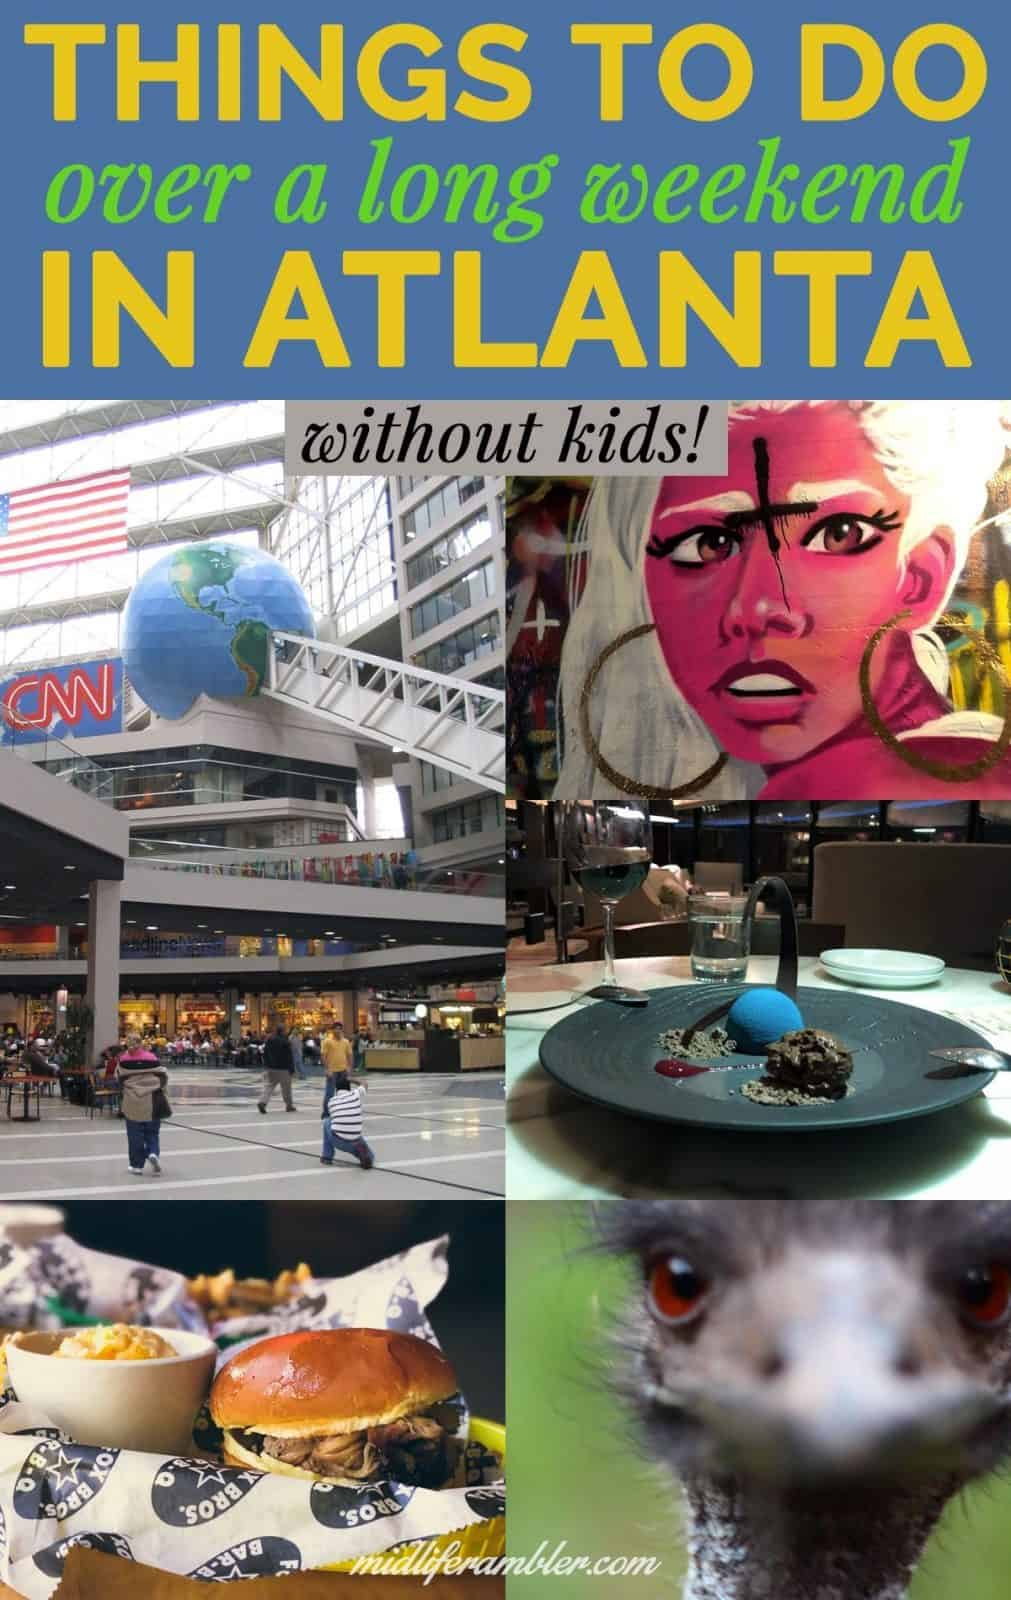 The Empty Nester's Guide to a Long Weekend in Atlanta 3